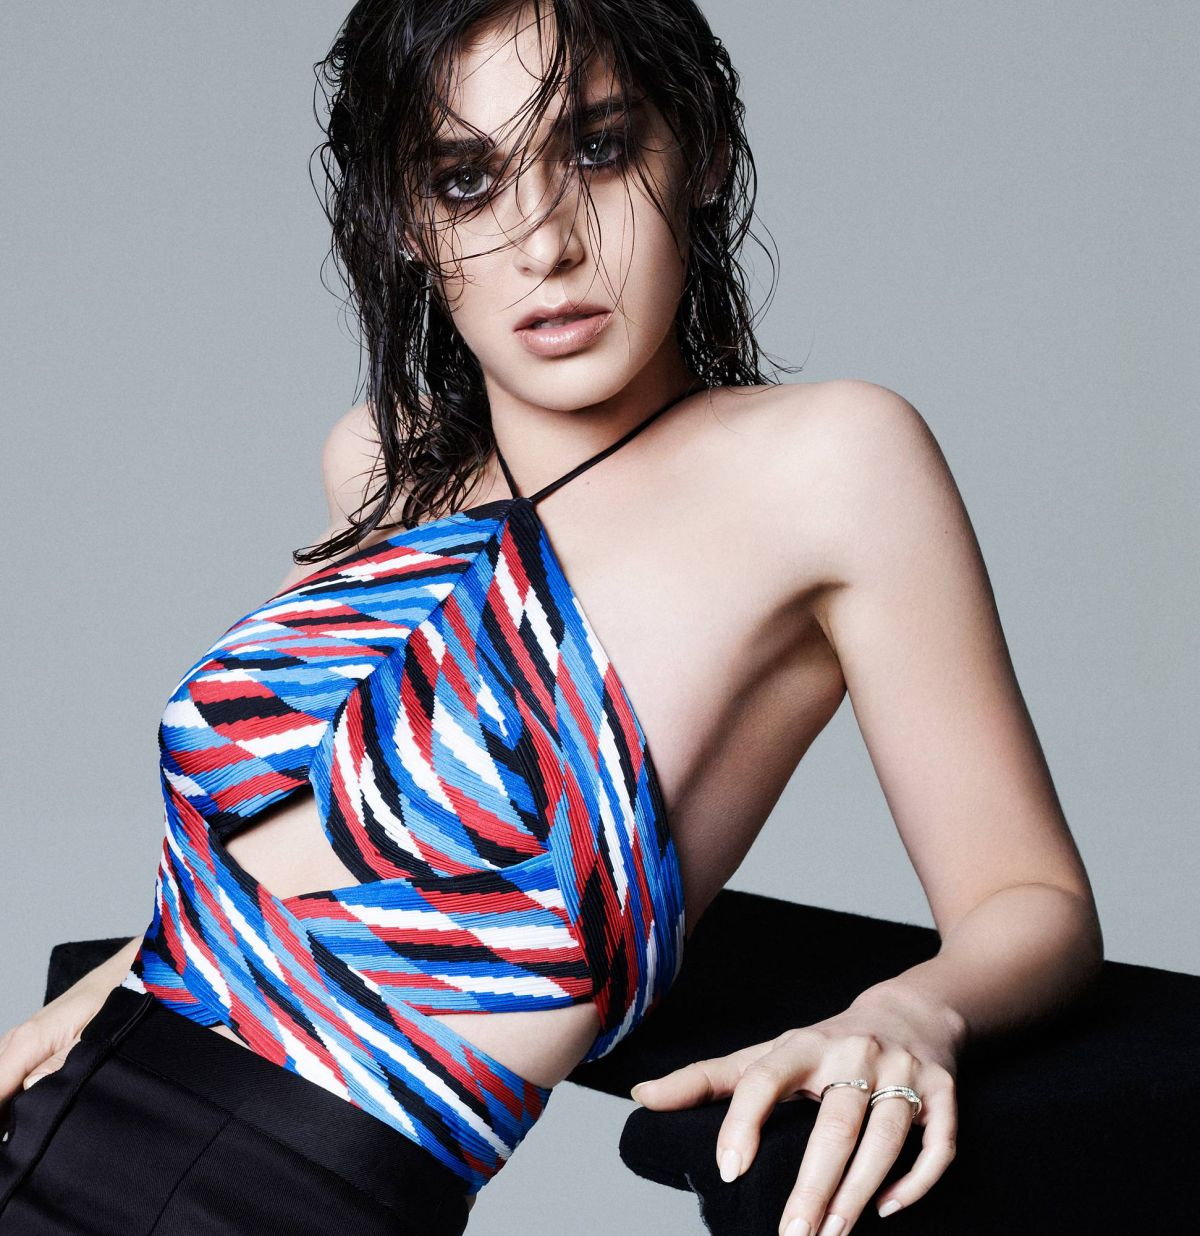 LIZZY CAPLAN in Elle Magazine, February 2015 Issue